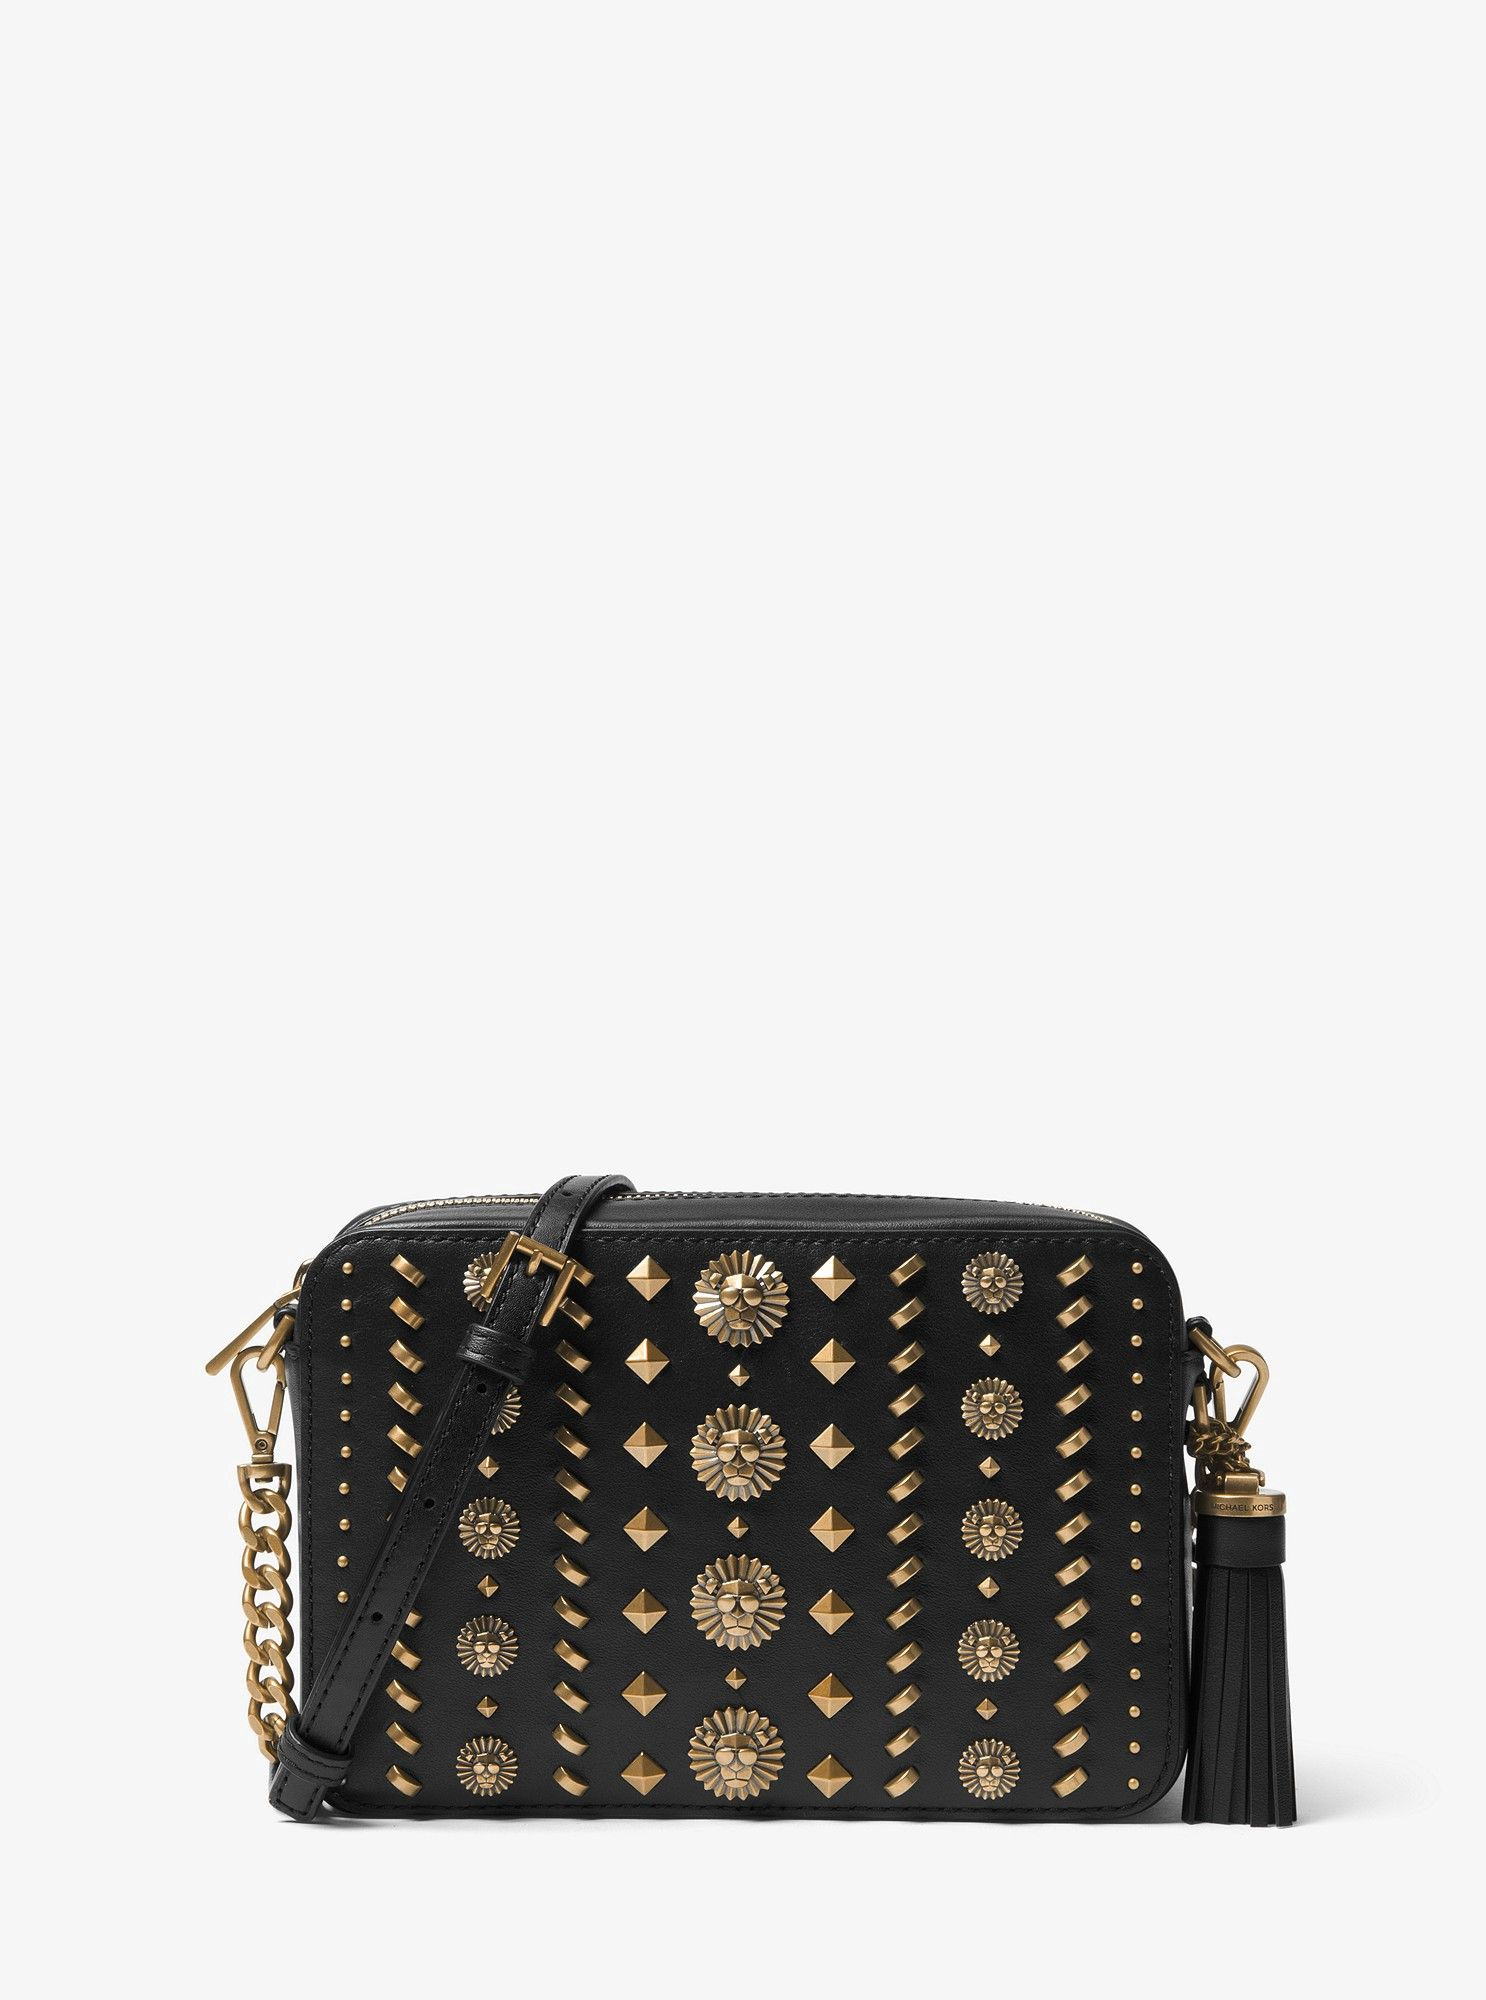 Michael Kors Ginny Medium Embellished Leather Crossbody - Black ... 4c309c2423f3e